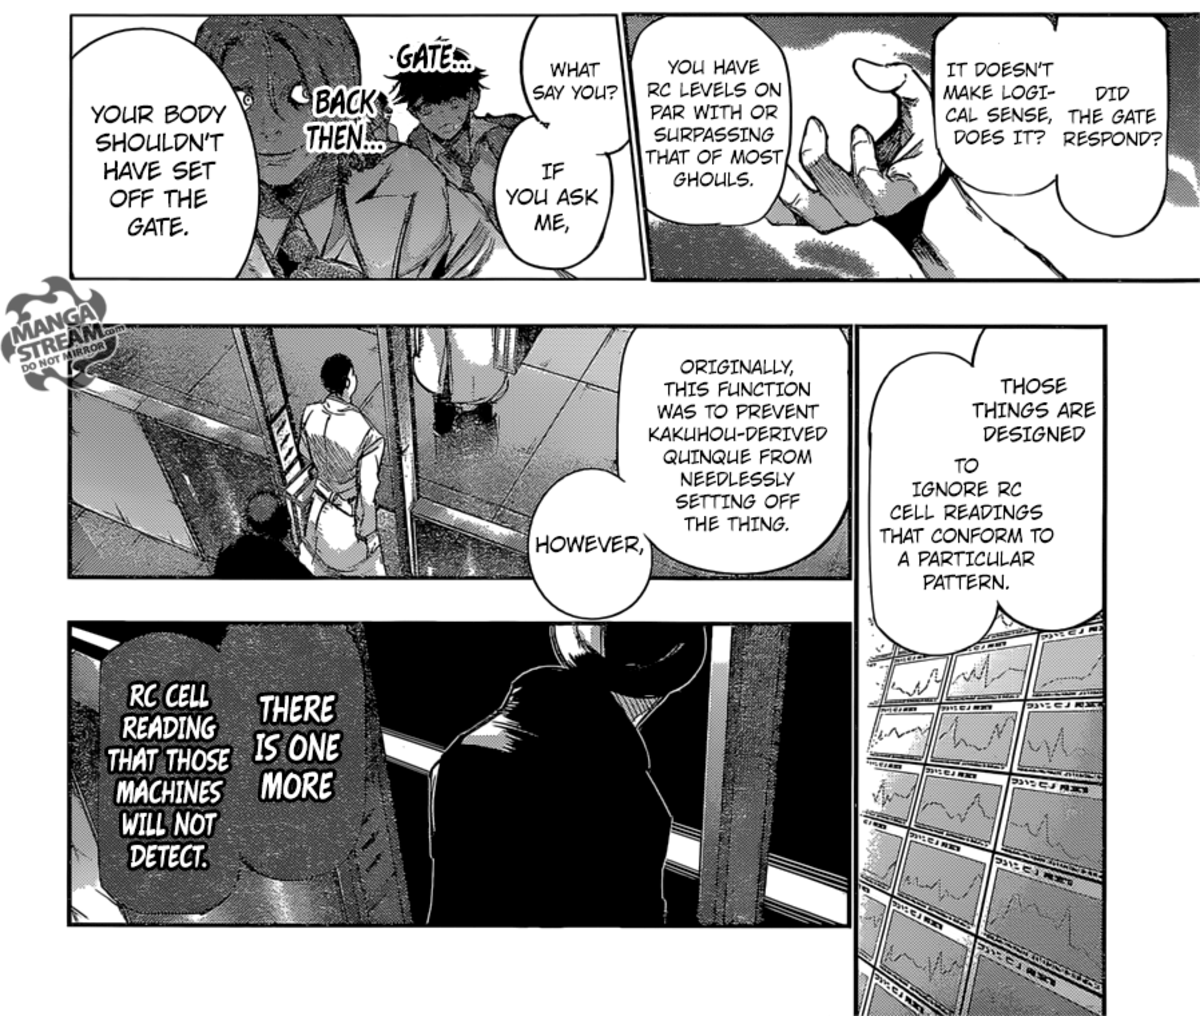 Eto explaining why the RC gate didn't detect Kaneki.